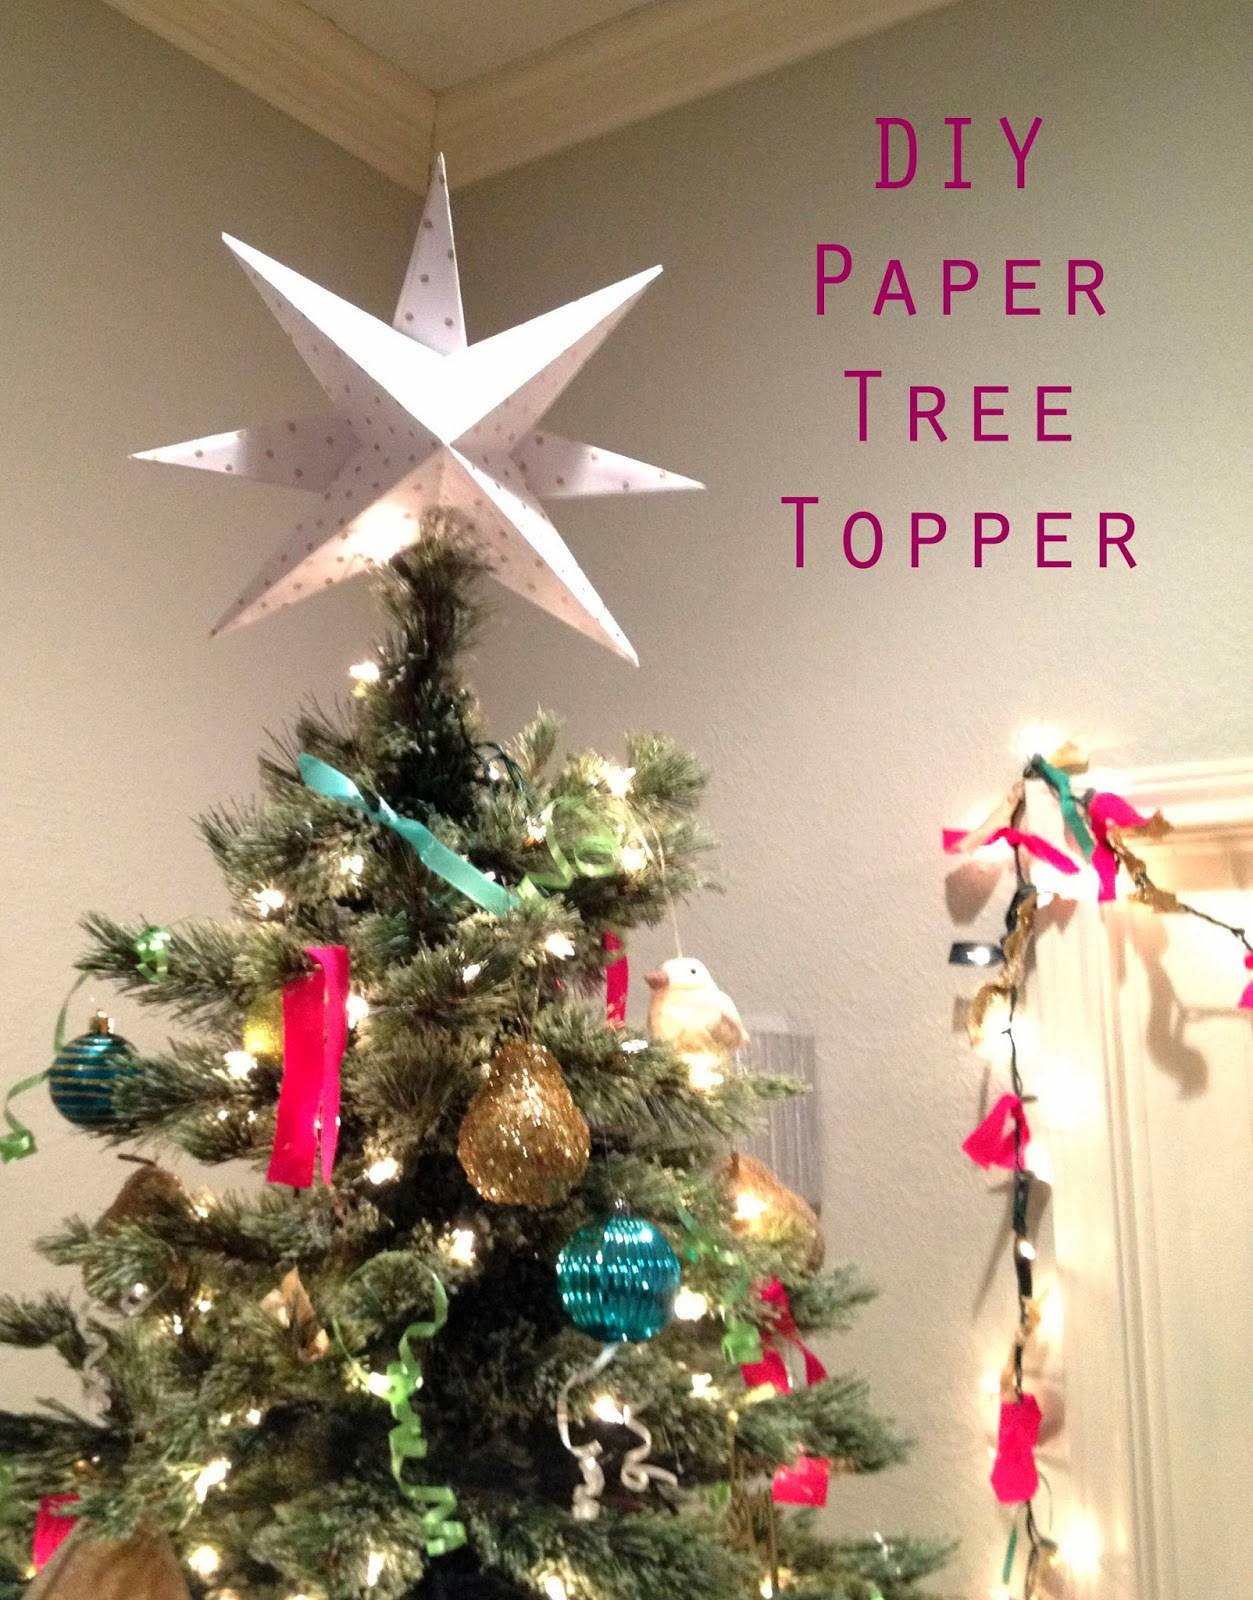 Best ideas about Christmas Tree Topper DIY . Save or Pin The Happy Homebo s DIY Paper Star Christmas Tree Topper Now.